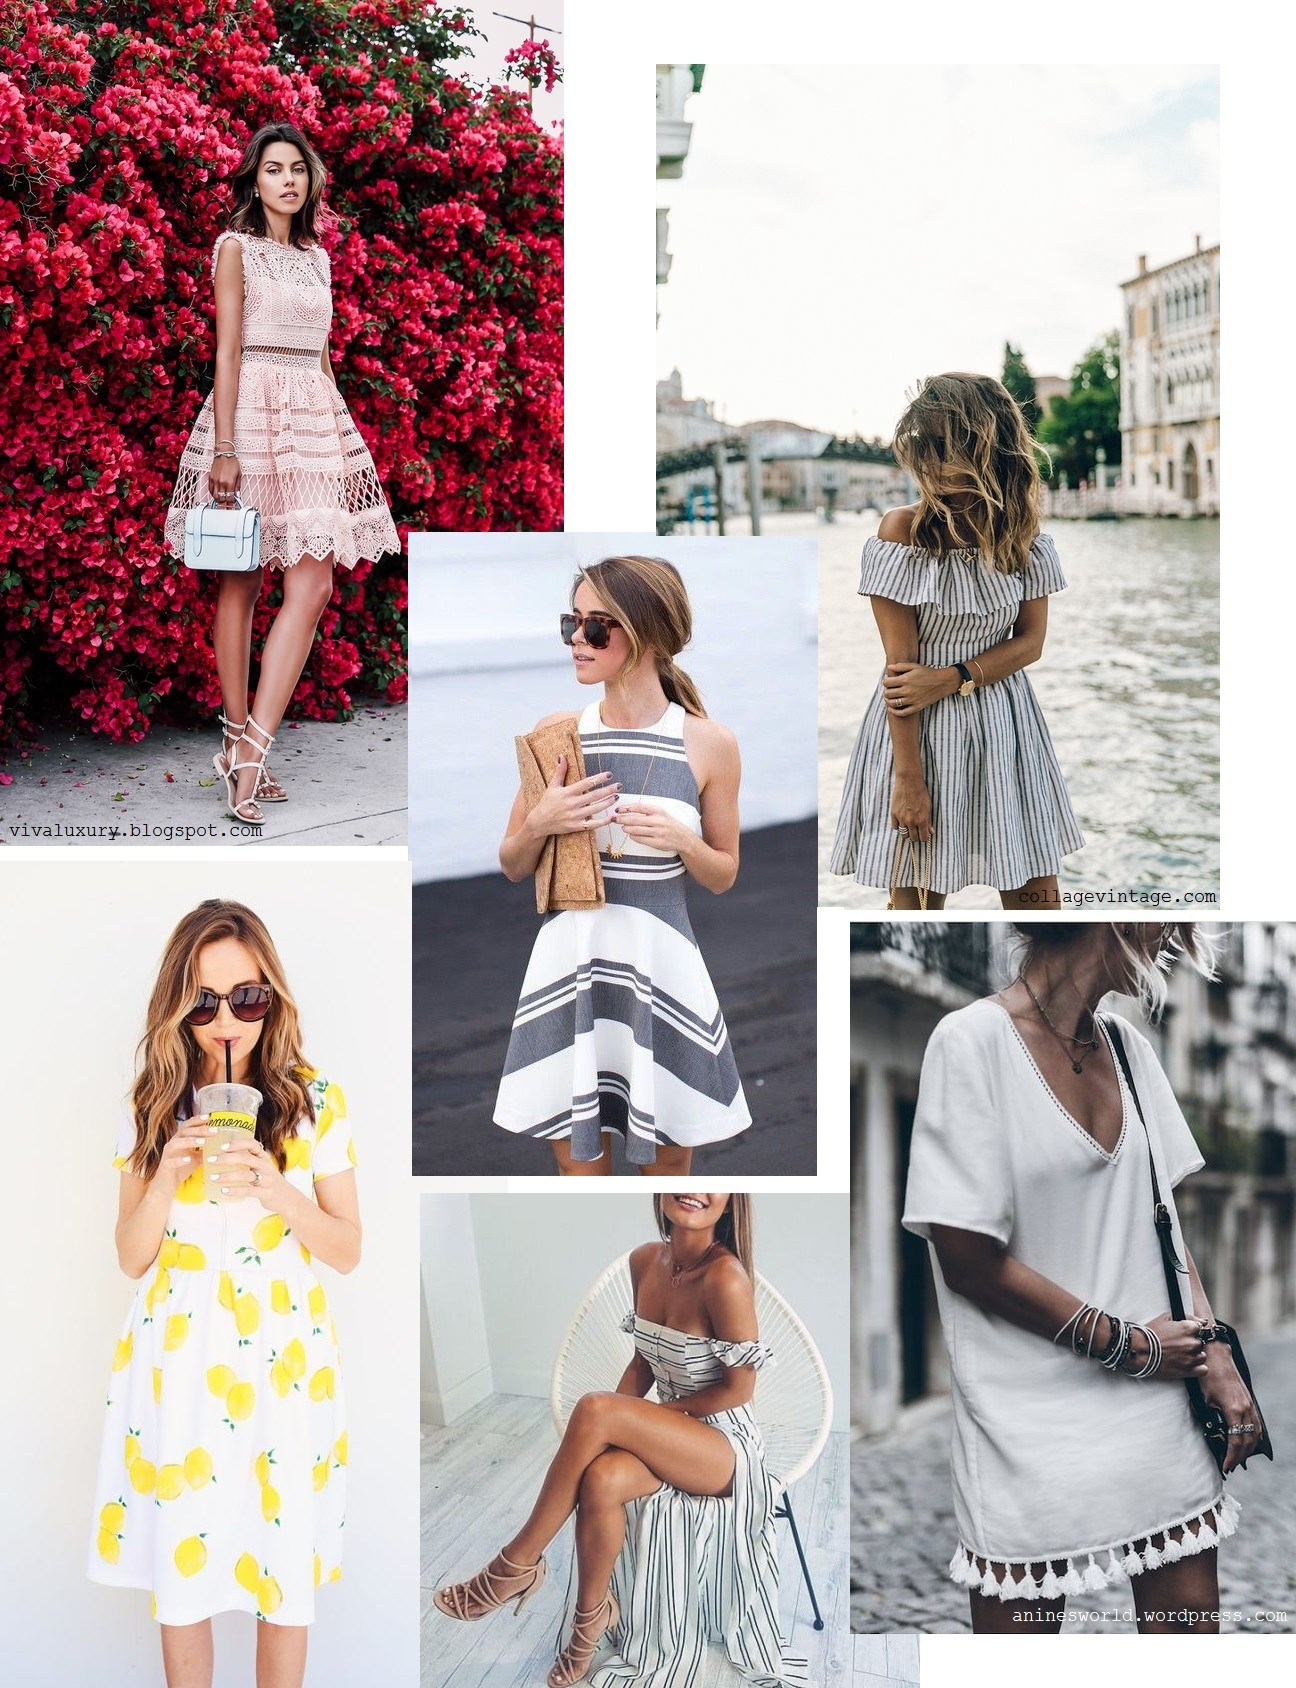 3. Summer vacation dresses 2016 trend c